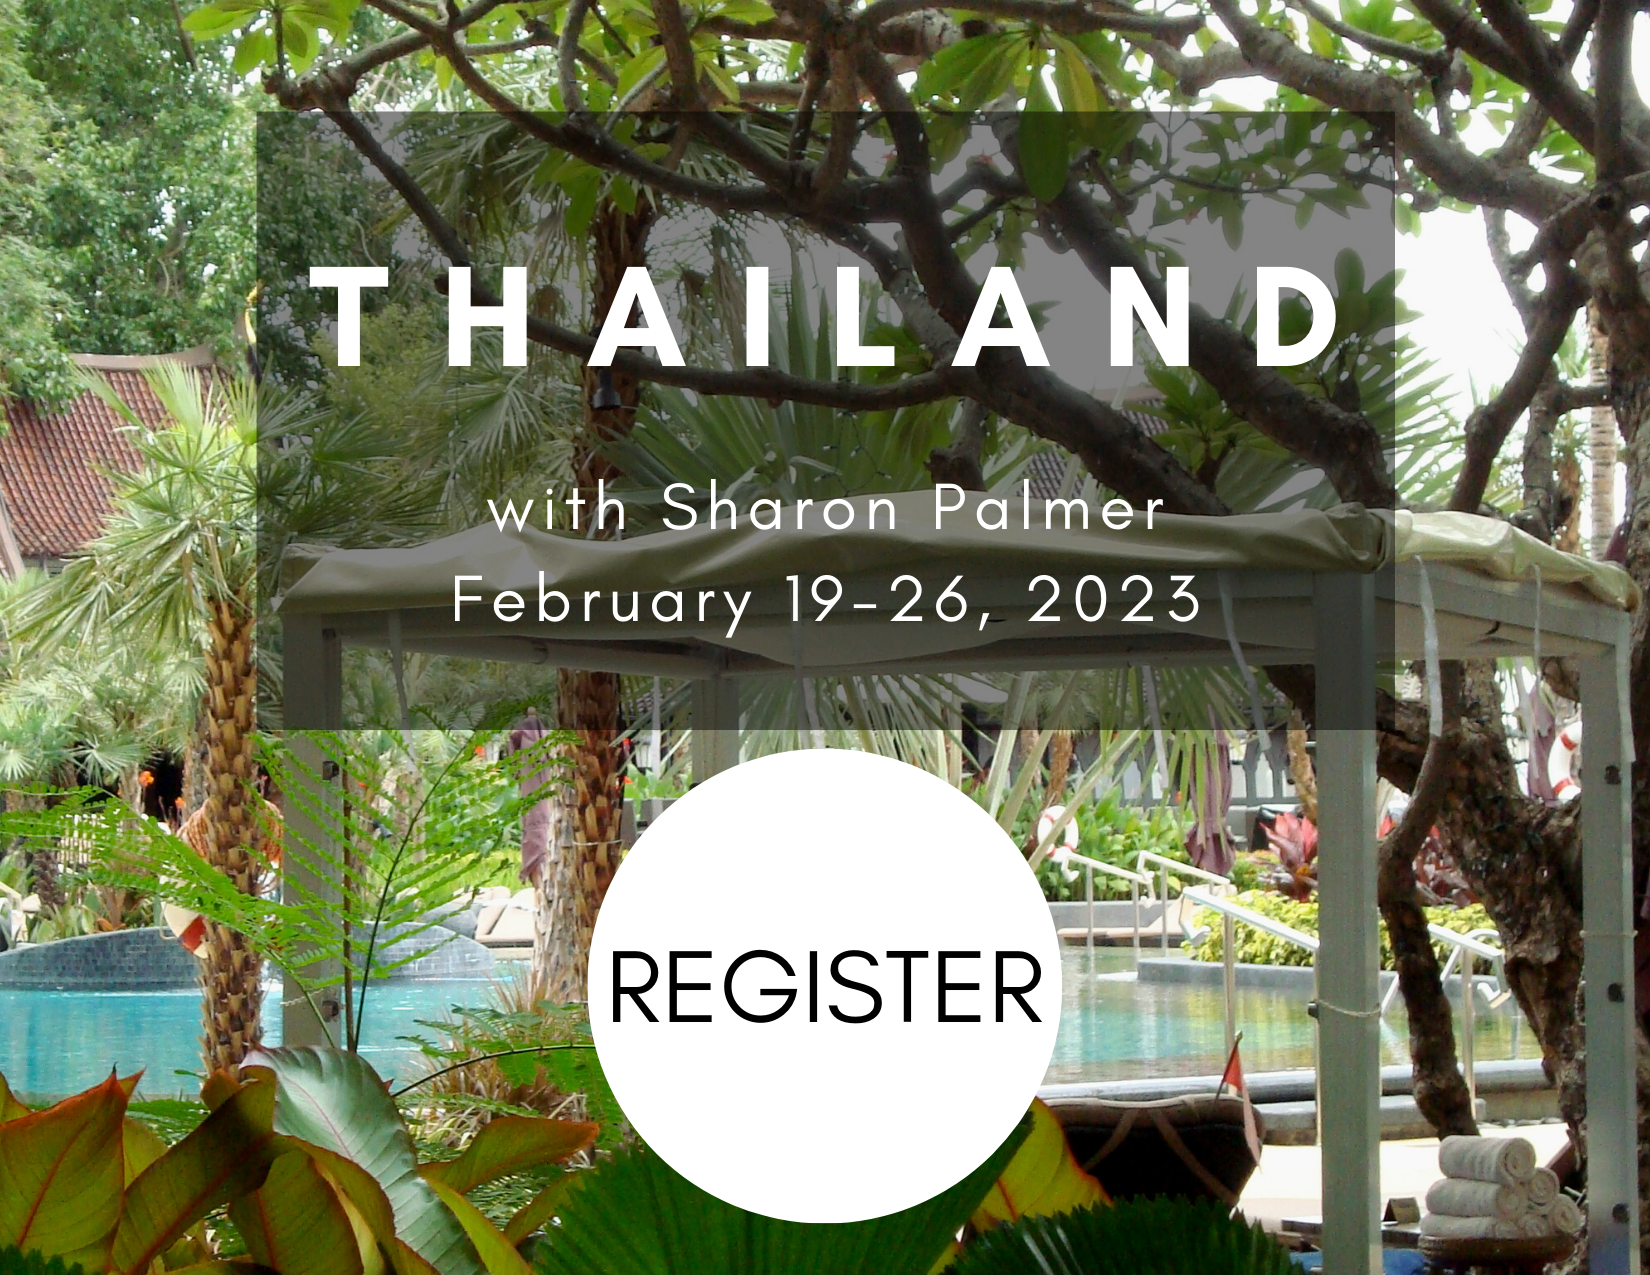 Register for a culinary tour to Thailand, February 18-26, 2023 with Oldways and Sharon Palmer